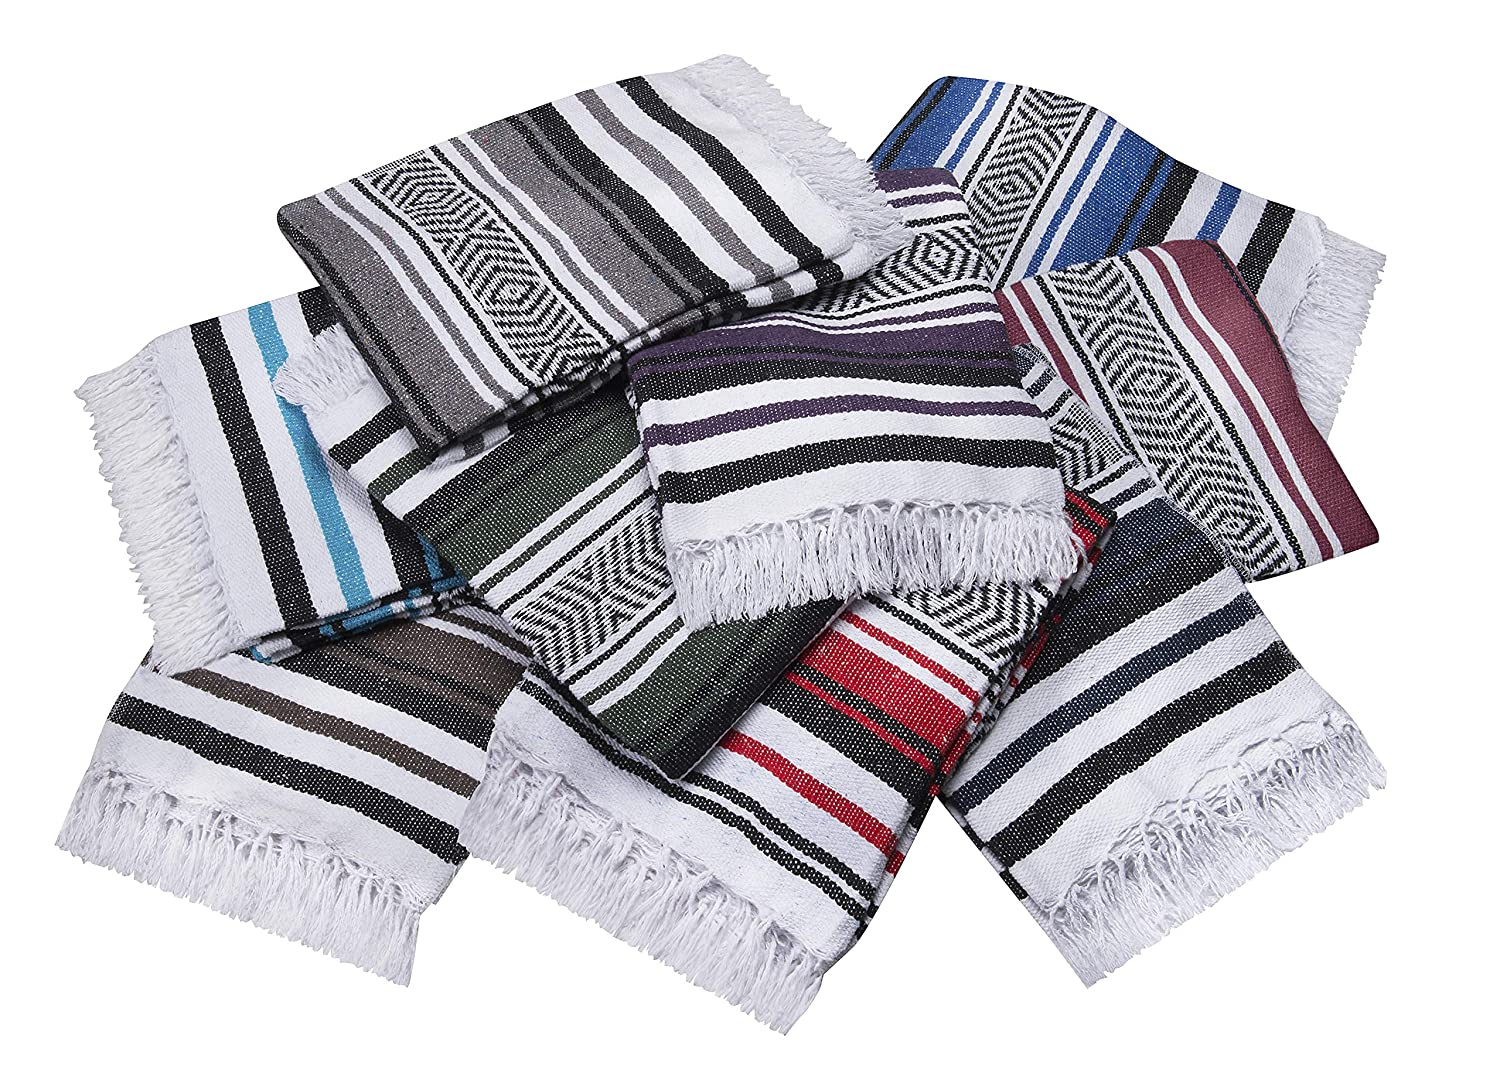 Vera Cruz – Mexican Yoga Blankets – 10-Pack – Wholesale Pricing – Made in Mexico